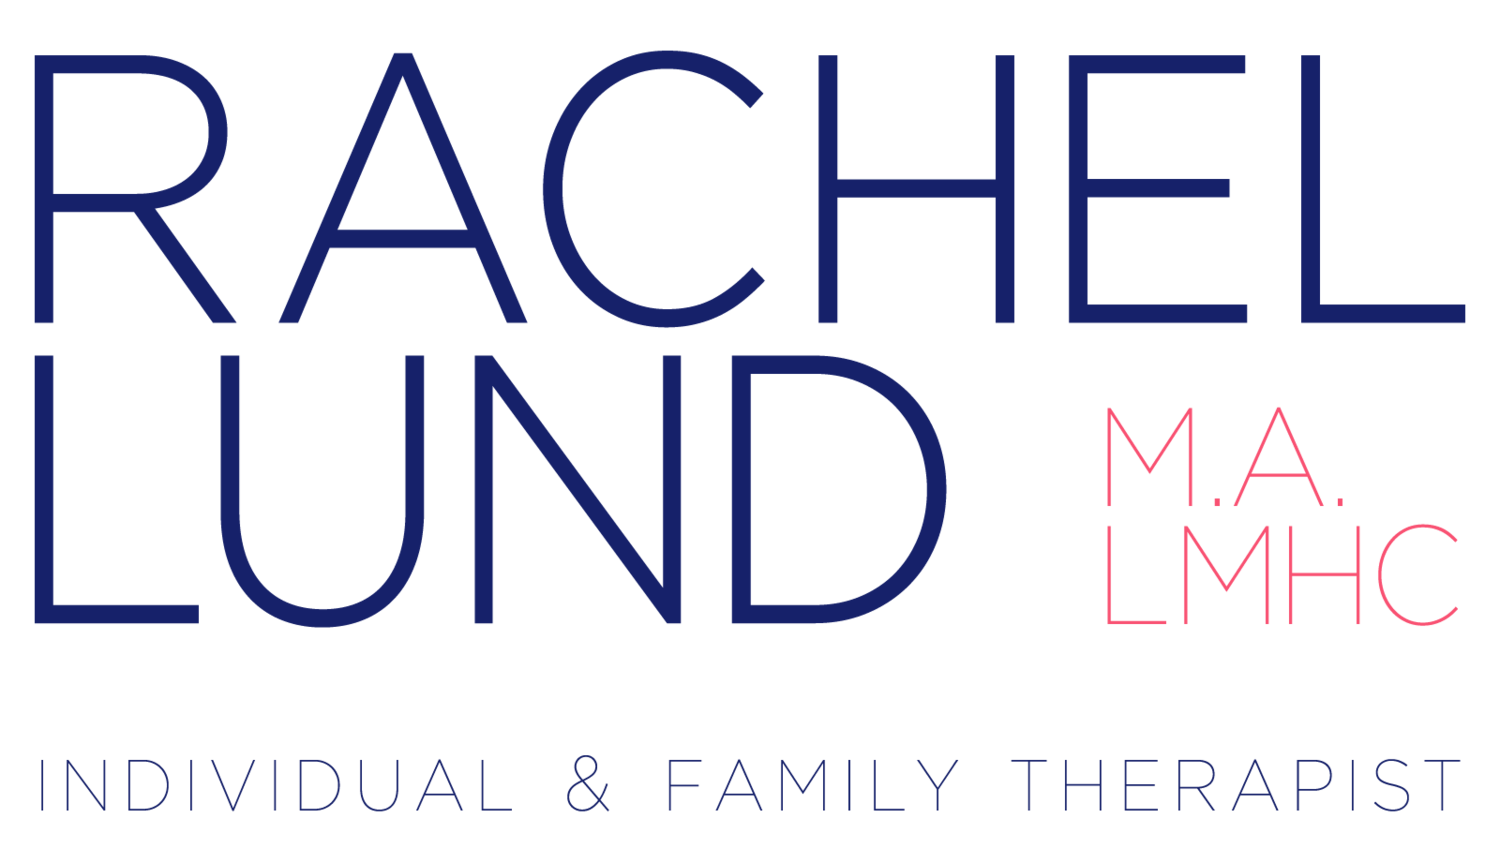 Rachel Lund Counseling